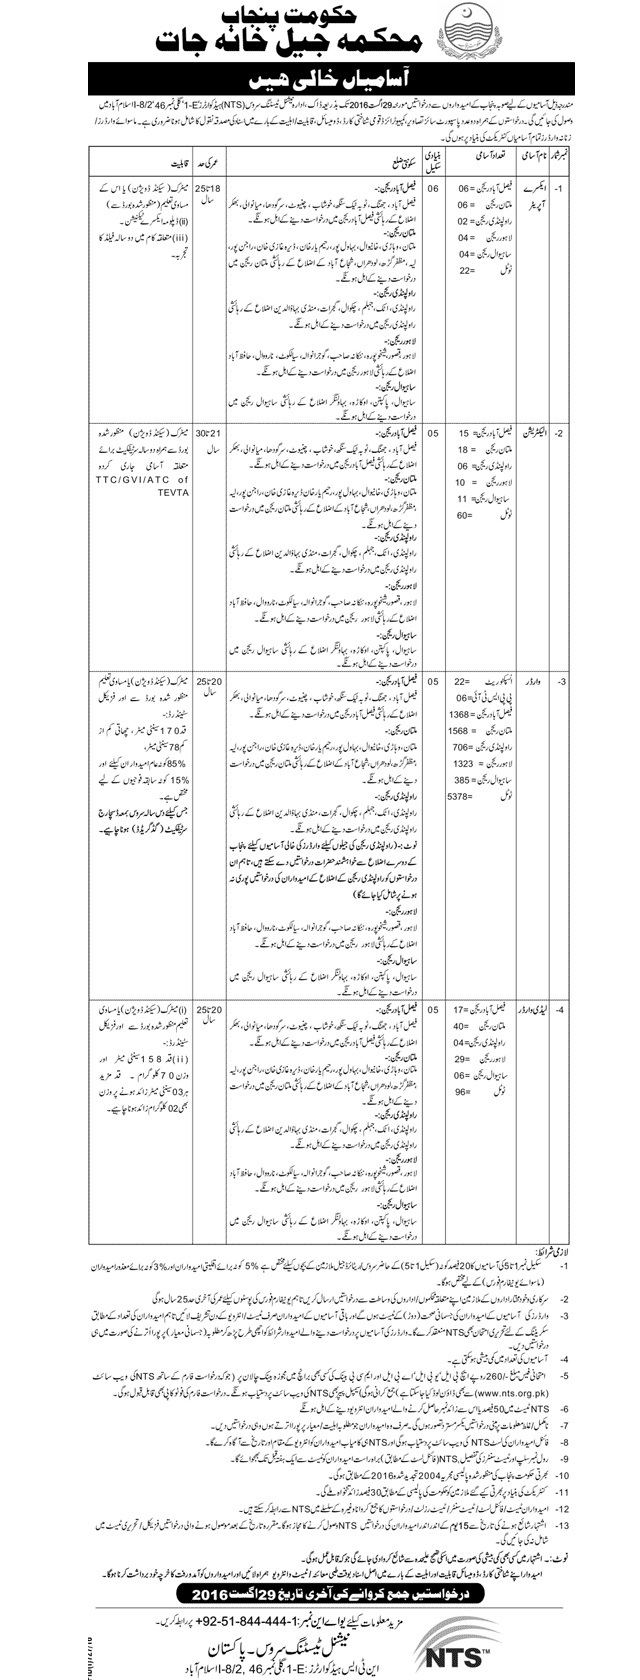 Jobs in Prison Department Punjab Jails - X-ray Operator, Electrician, Warder